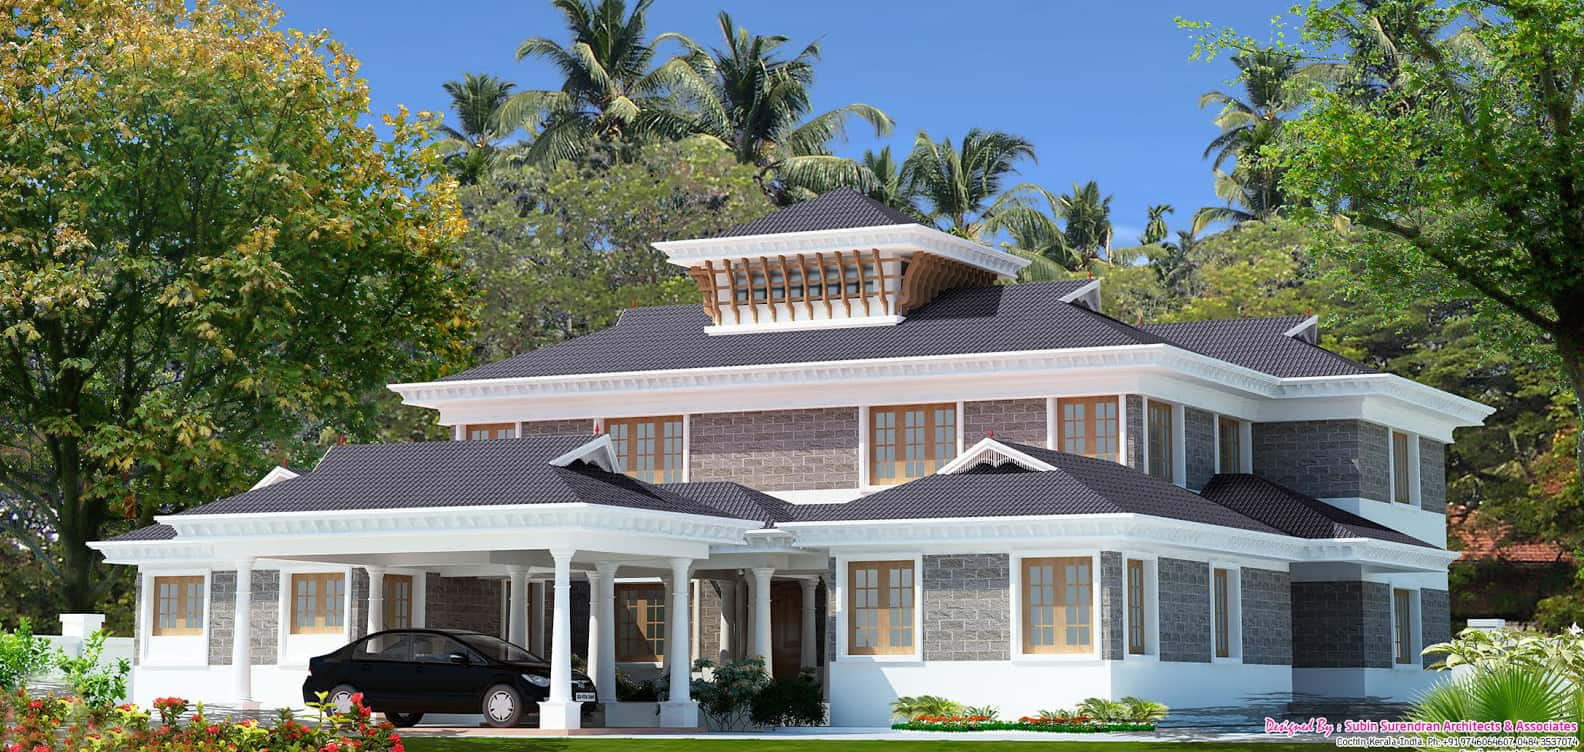 Home design interior most beautiful houses in kerala most beautiful houses in kerala - Kerala beautiful house ...